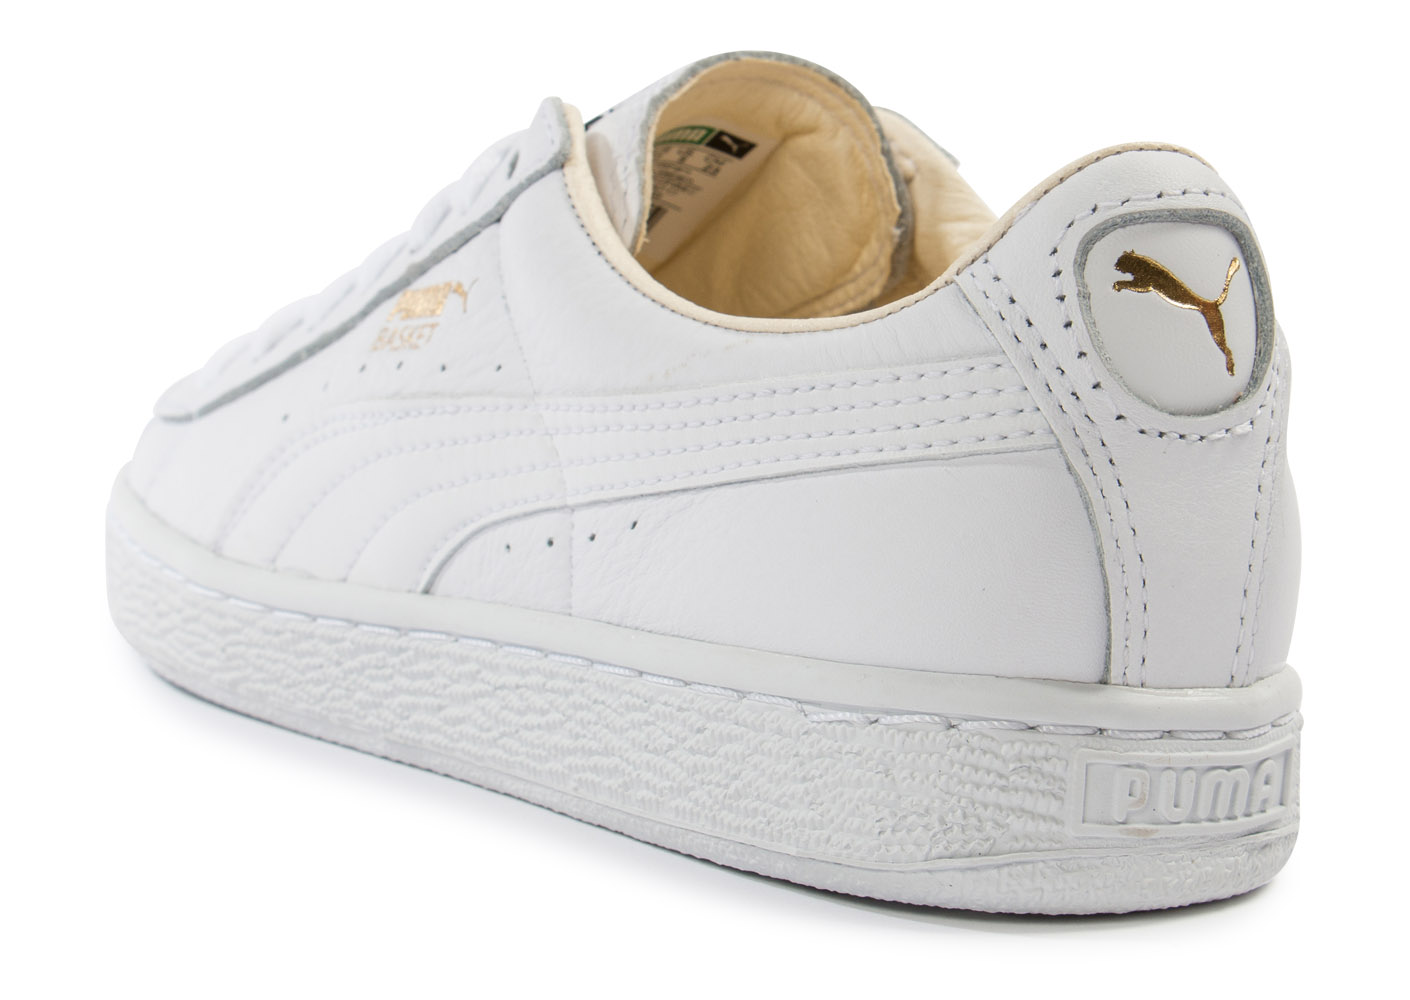 puma basket classic cuir blanche baskets tennis femme achat et vente. Black Bedroom Furniture Sets. Home Design Ideas